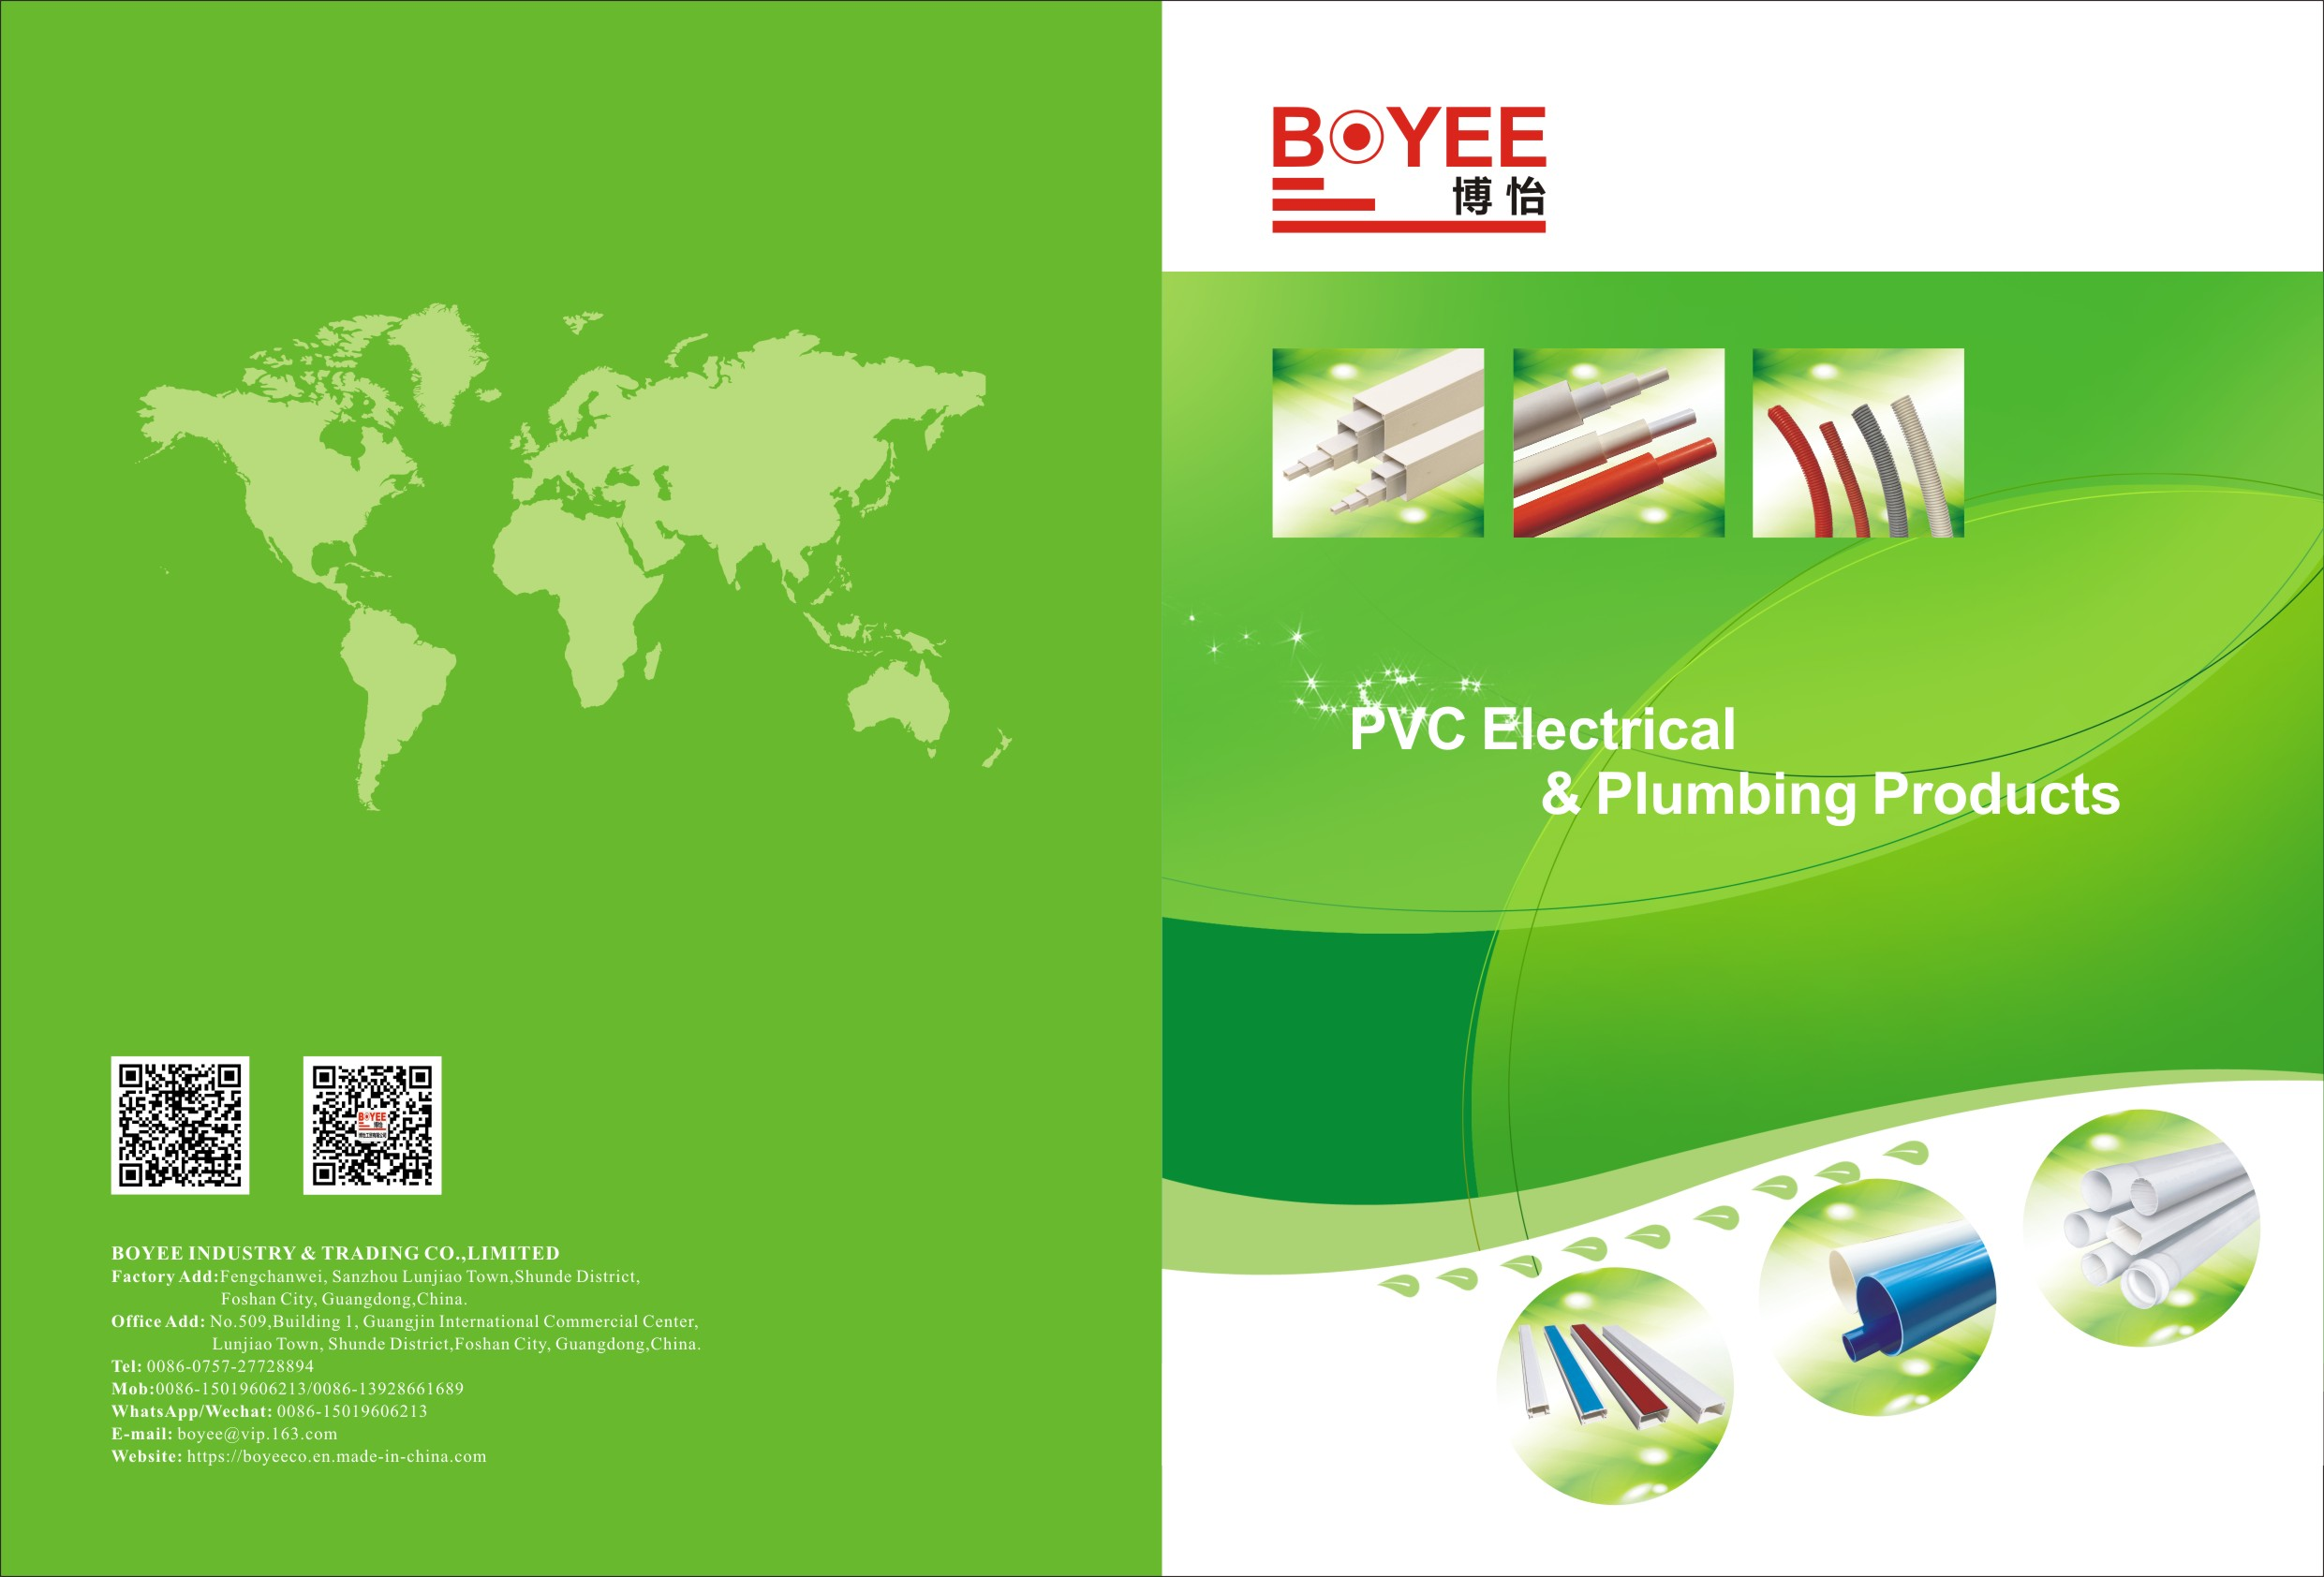 PVC Building Materials Catalogue from BOYEE company